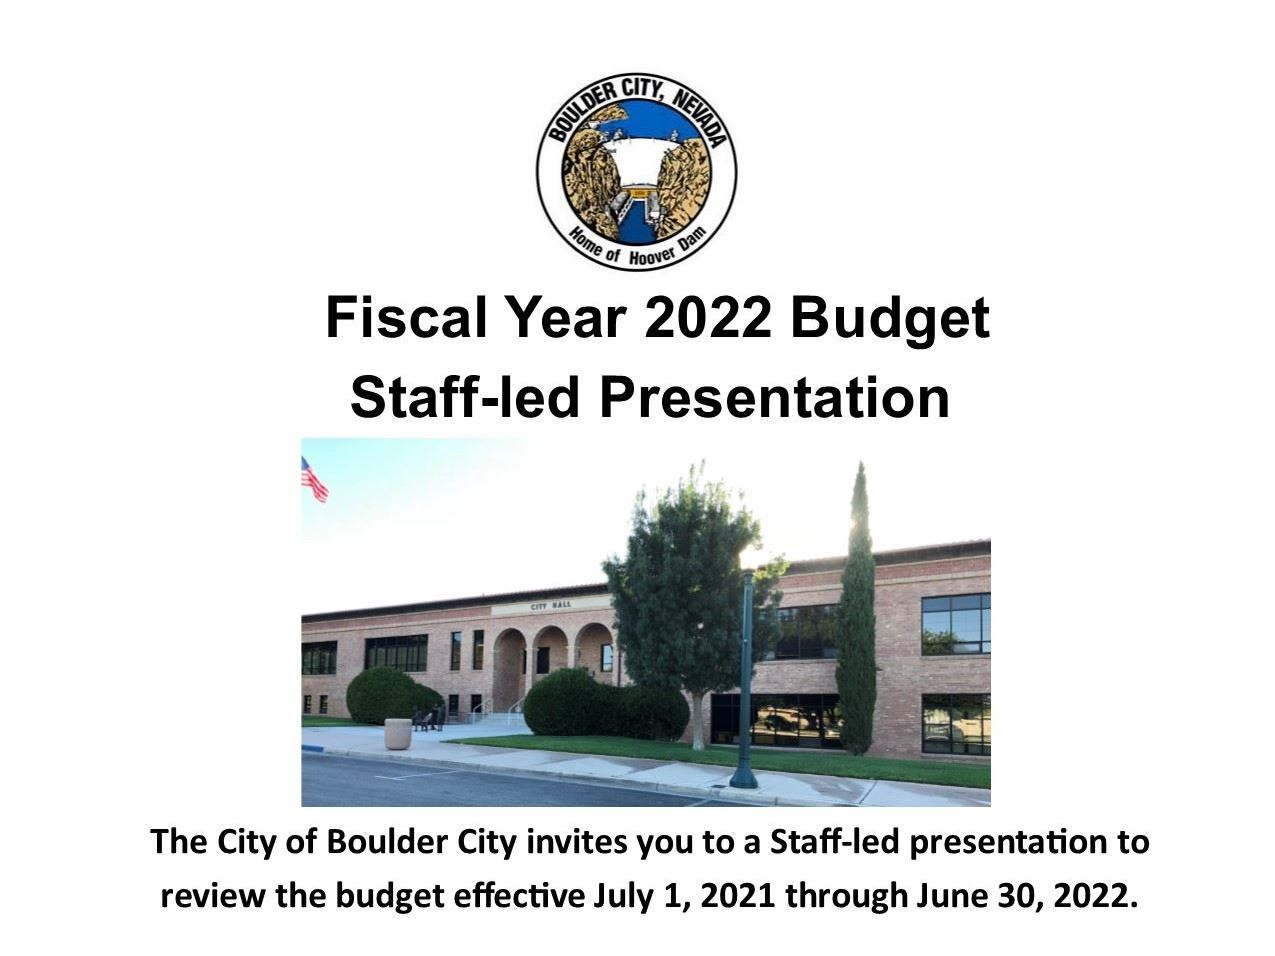 2022 Budget Staff-led Presentation